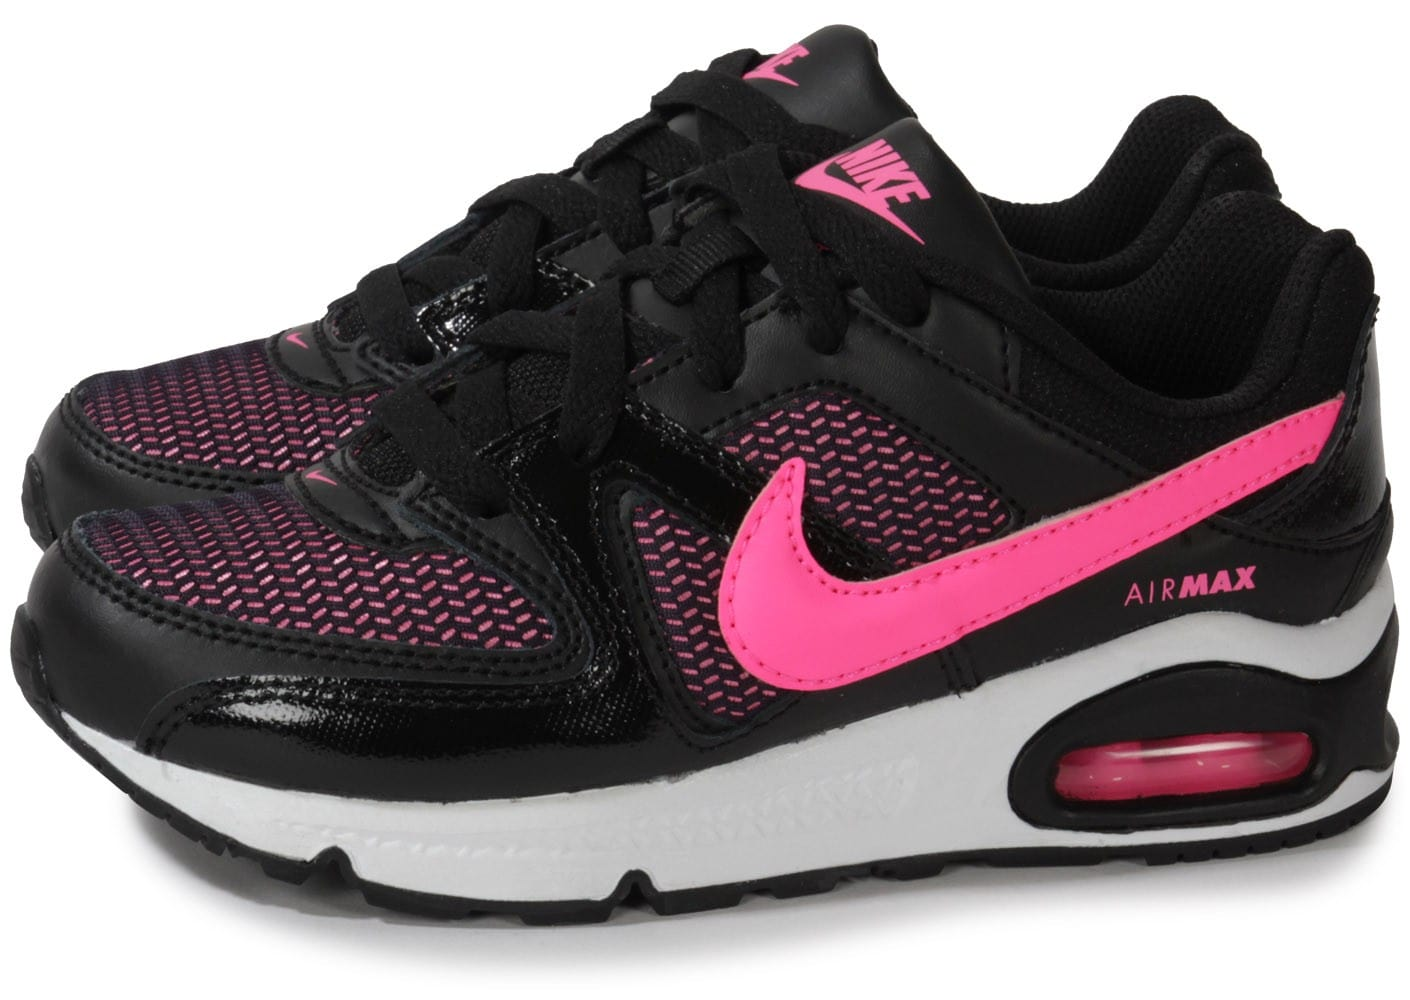 nike air max command enfant noire et rose chaussures chaussures chausport. Black Bedroom Furniture Sets. Home Design Ideas